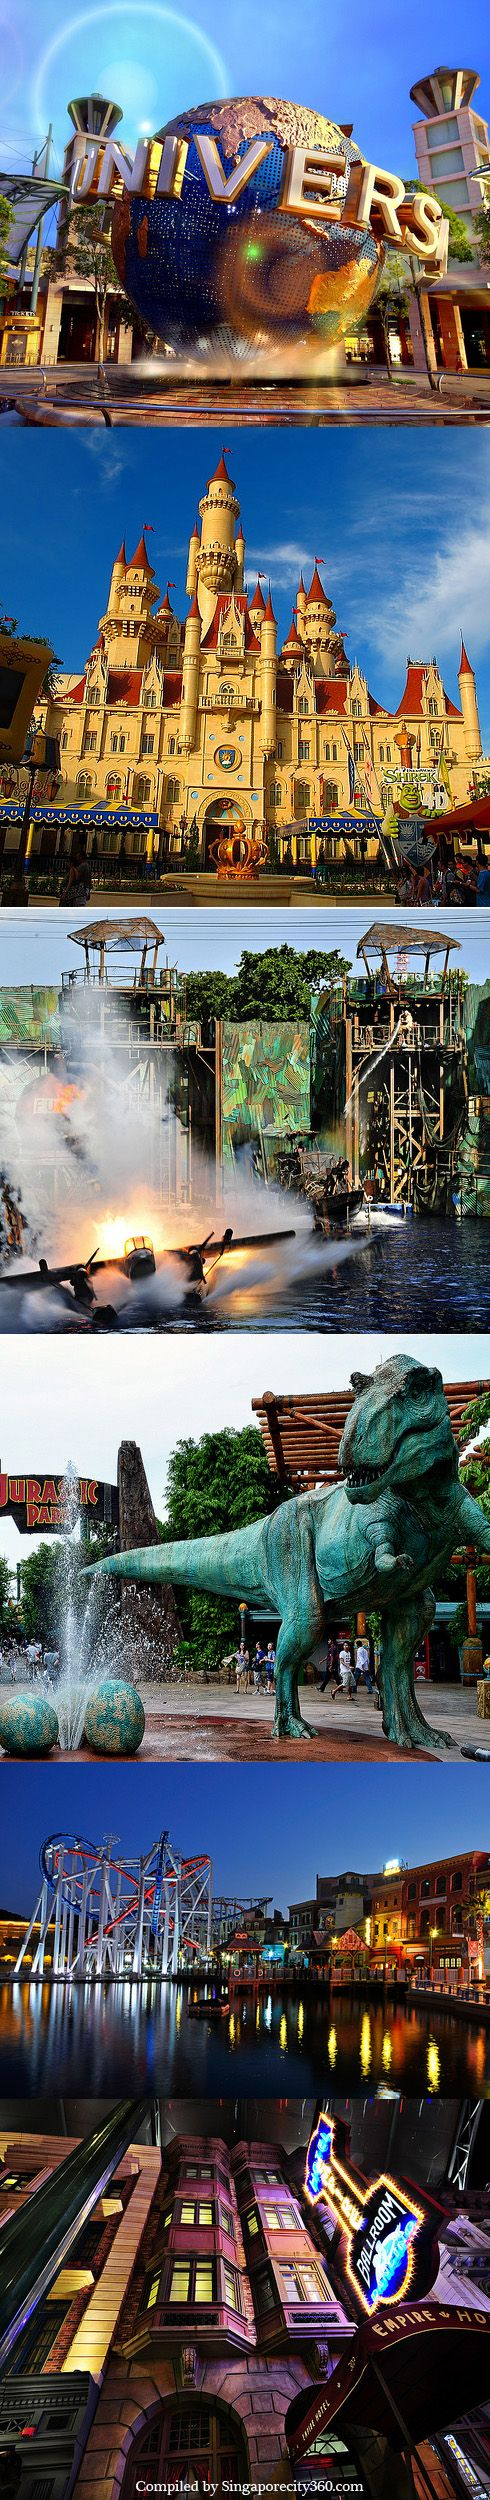 Universal Studios Singapore - Been here last 2011 with Bax (Lucky Sweet Mansueto).. Bohwok eh! LOL